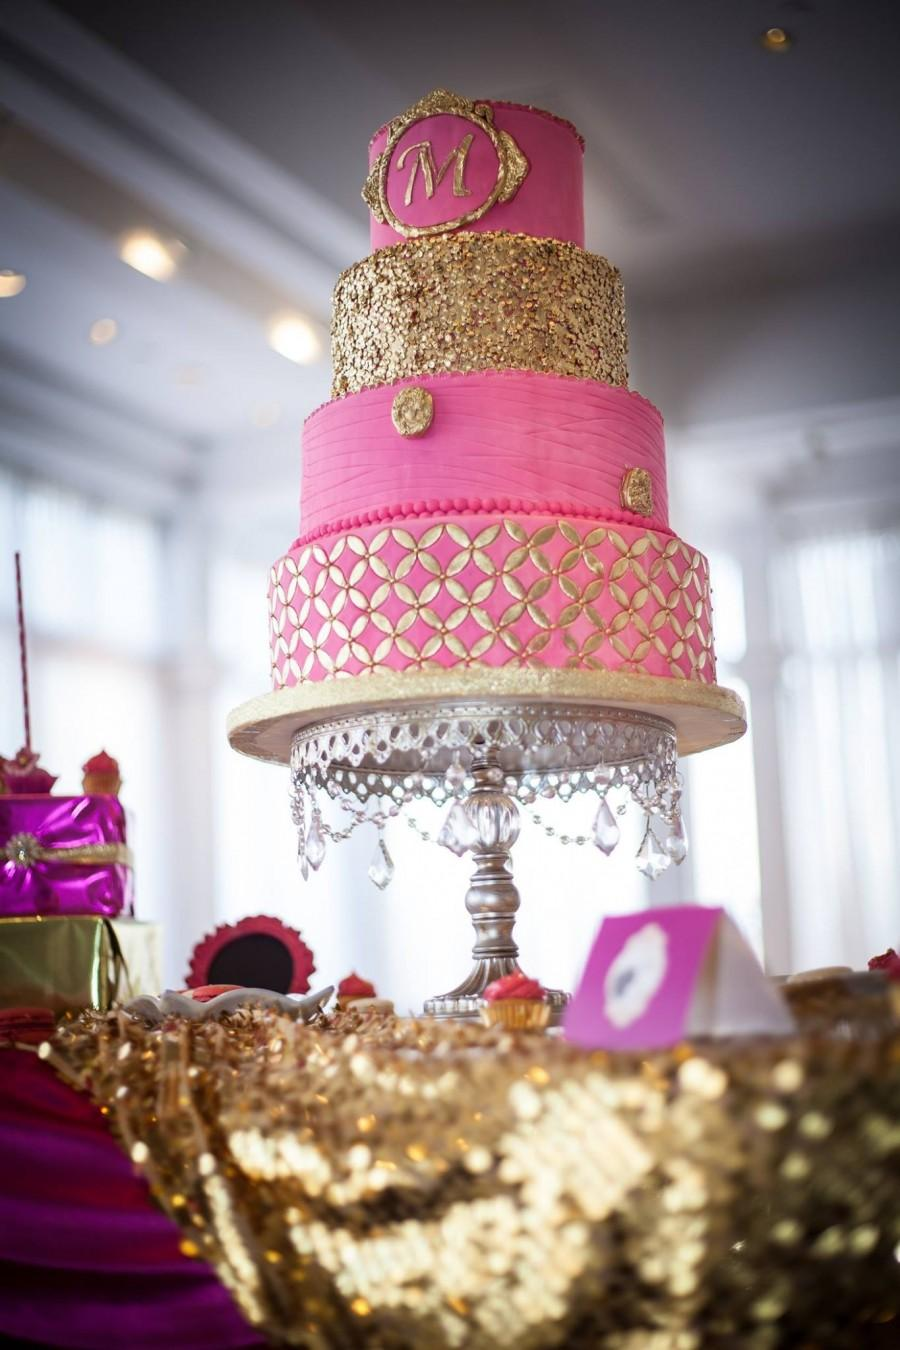 Pink And Gold Wedding Cake #2512494 - Weddbook